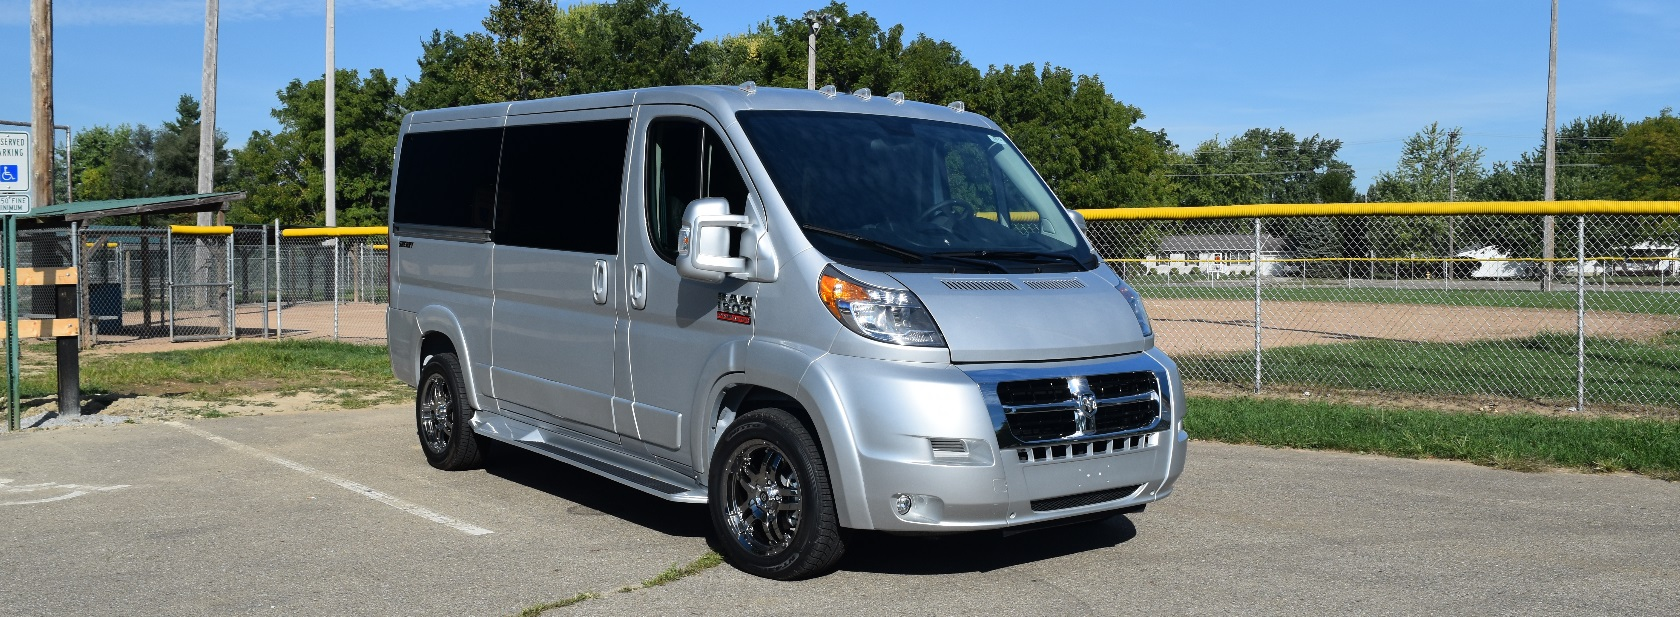 wheelchair vans for sale ohio paul sherry vans. Black Bedroom Furniture Sets. Home Design Ideas